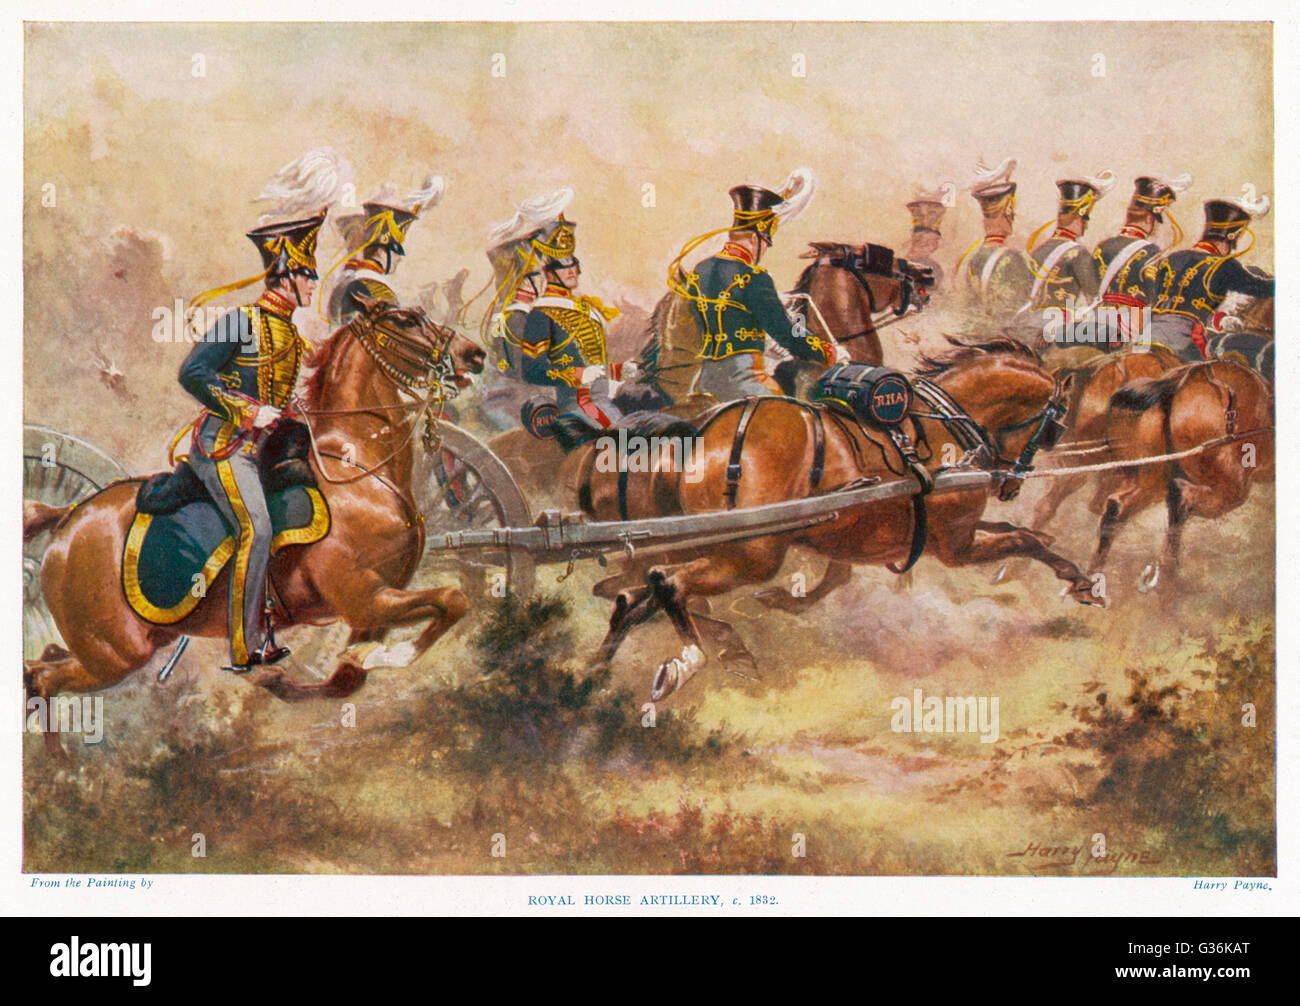 British Royal Horse Artillery In Action 19th Century Date 1832 Stock Photo Alamy